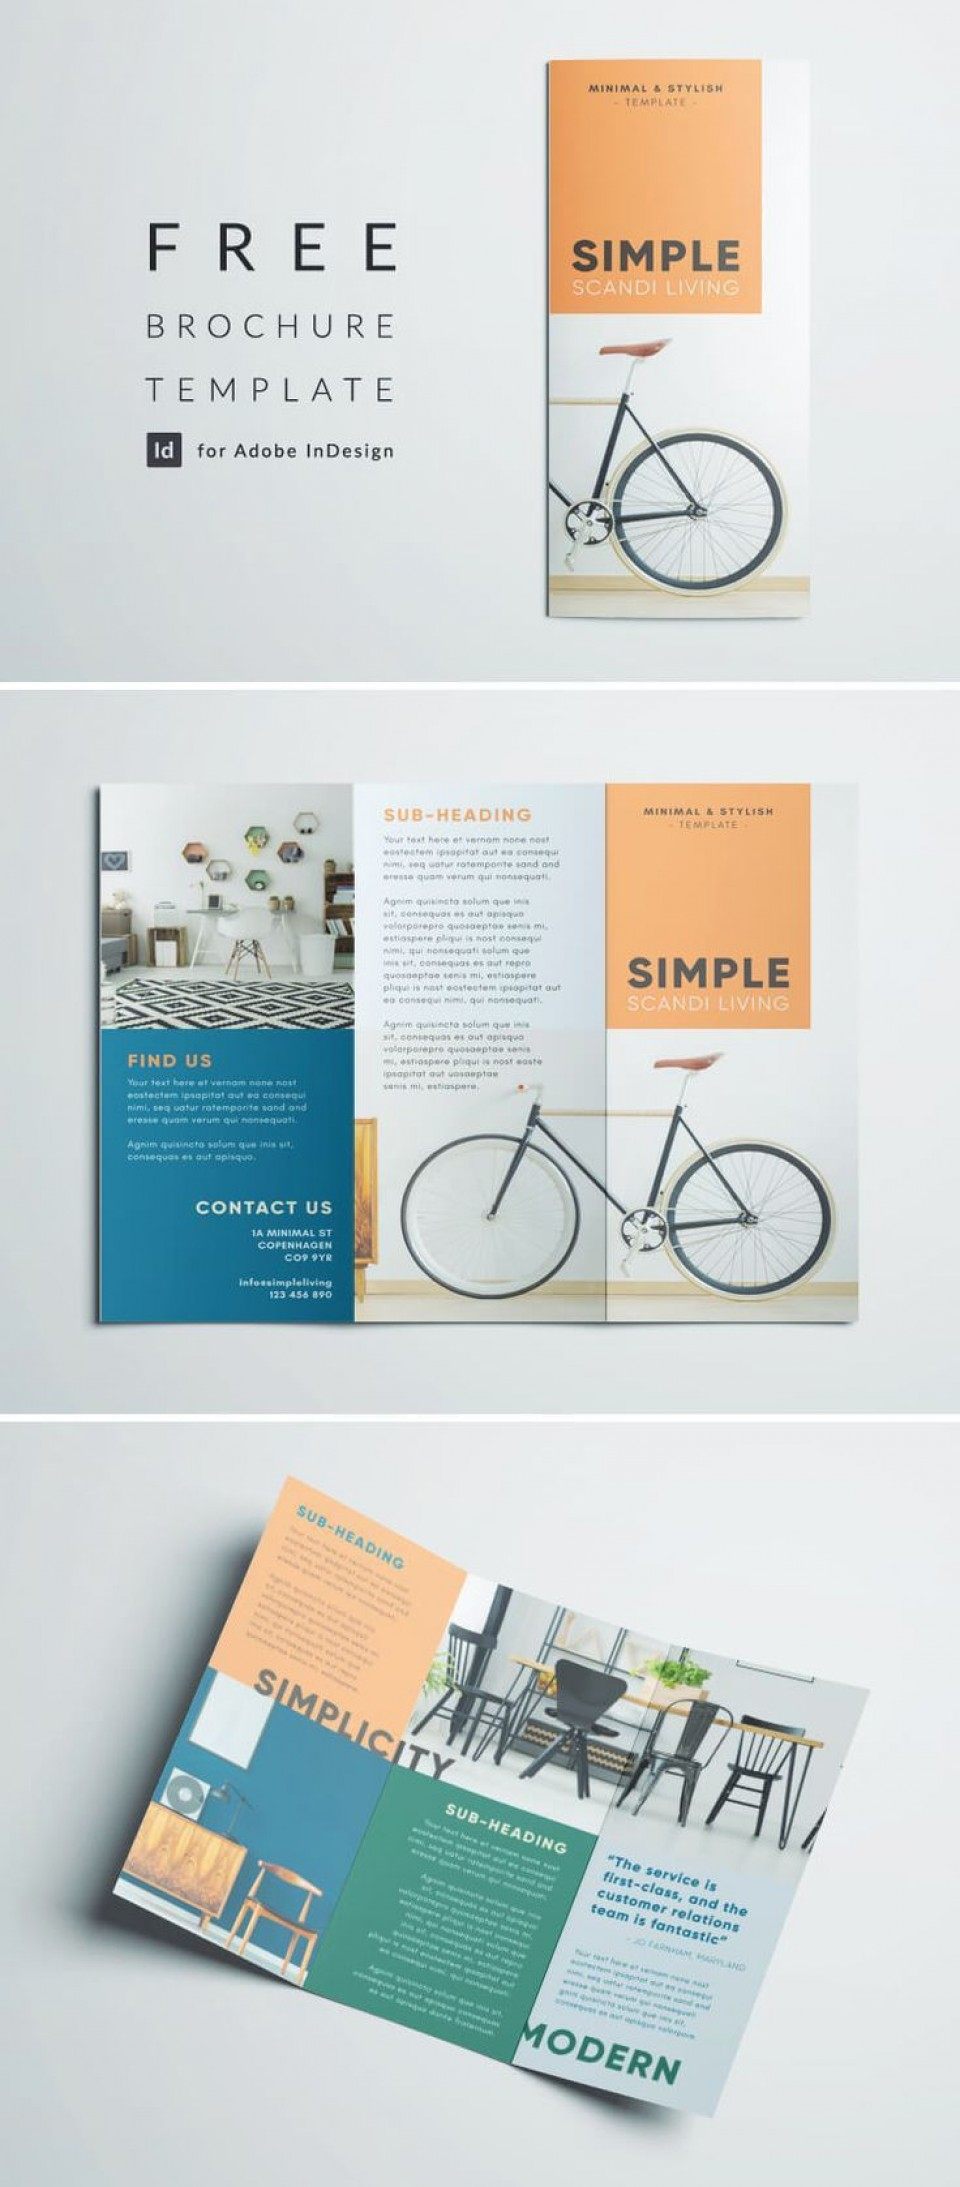 001 Unbelievable Indesign Tri Fold Brochure Template Image  Free Adobe 11x17960